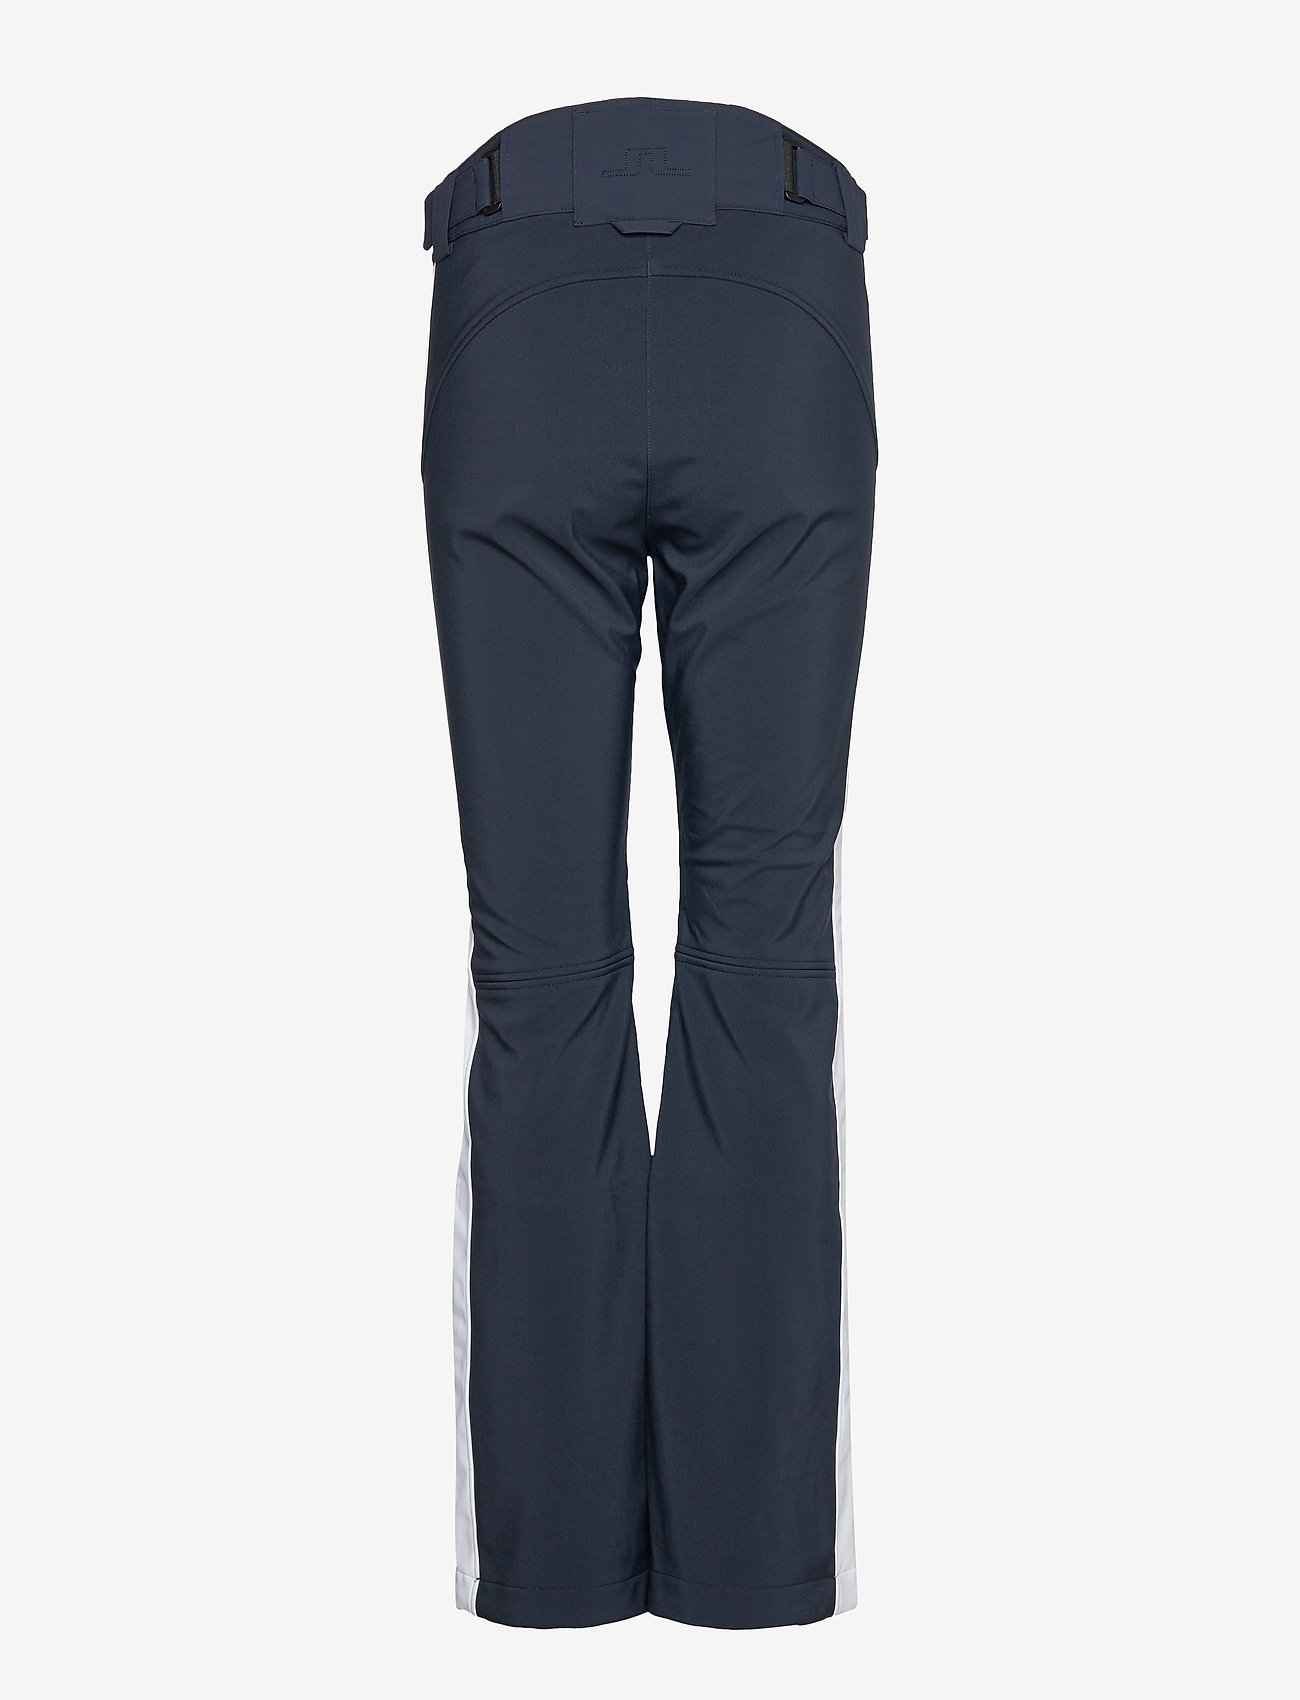 J. Lindeberg Ski - W Stanford Striped Pts-JL Soft - skiing pants - jl navy - 1